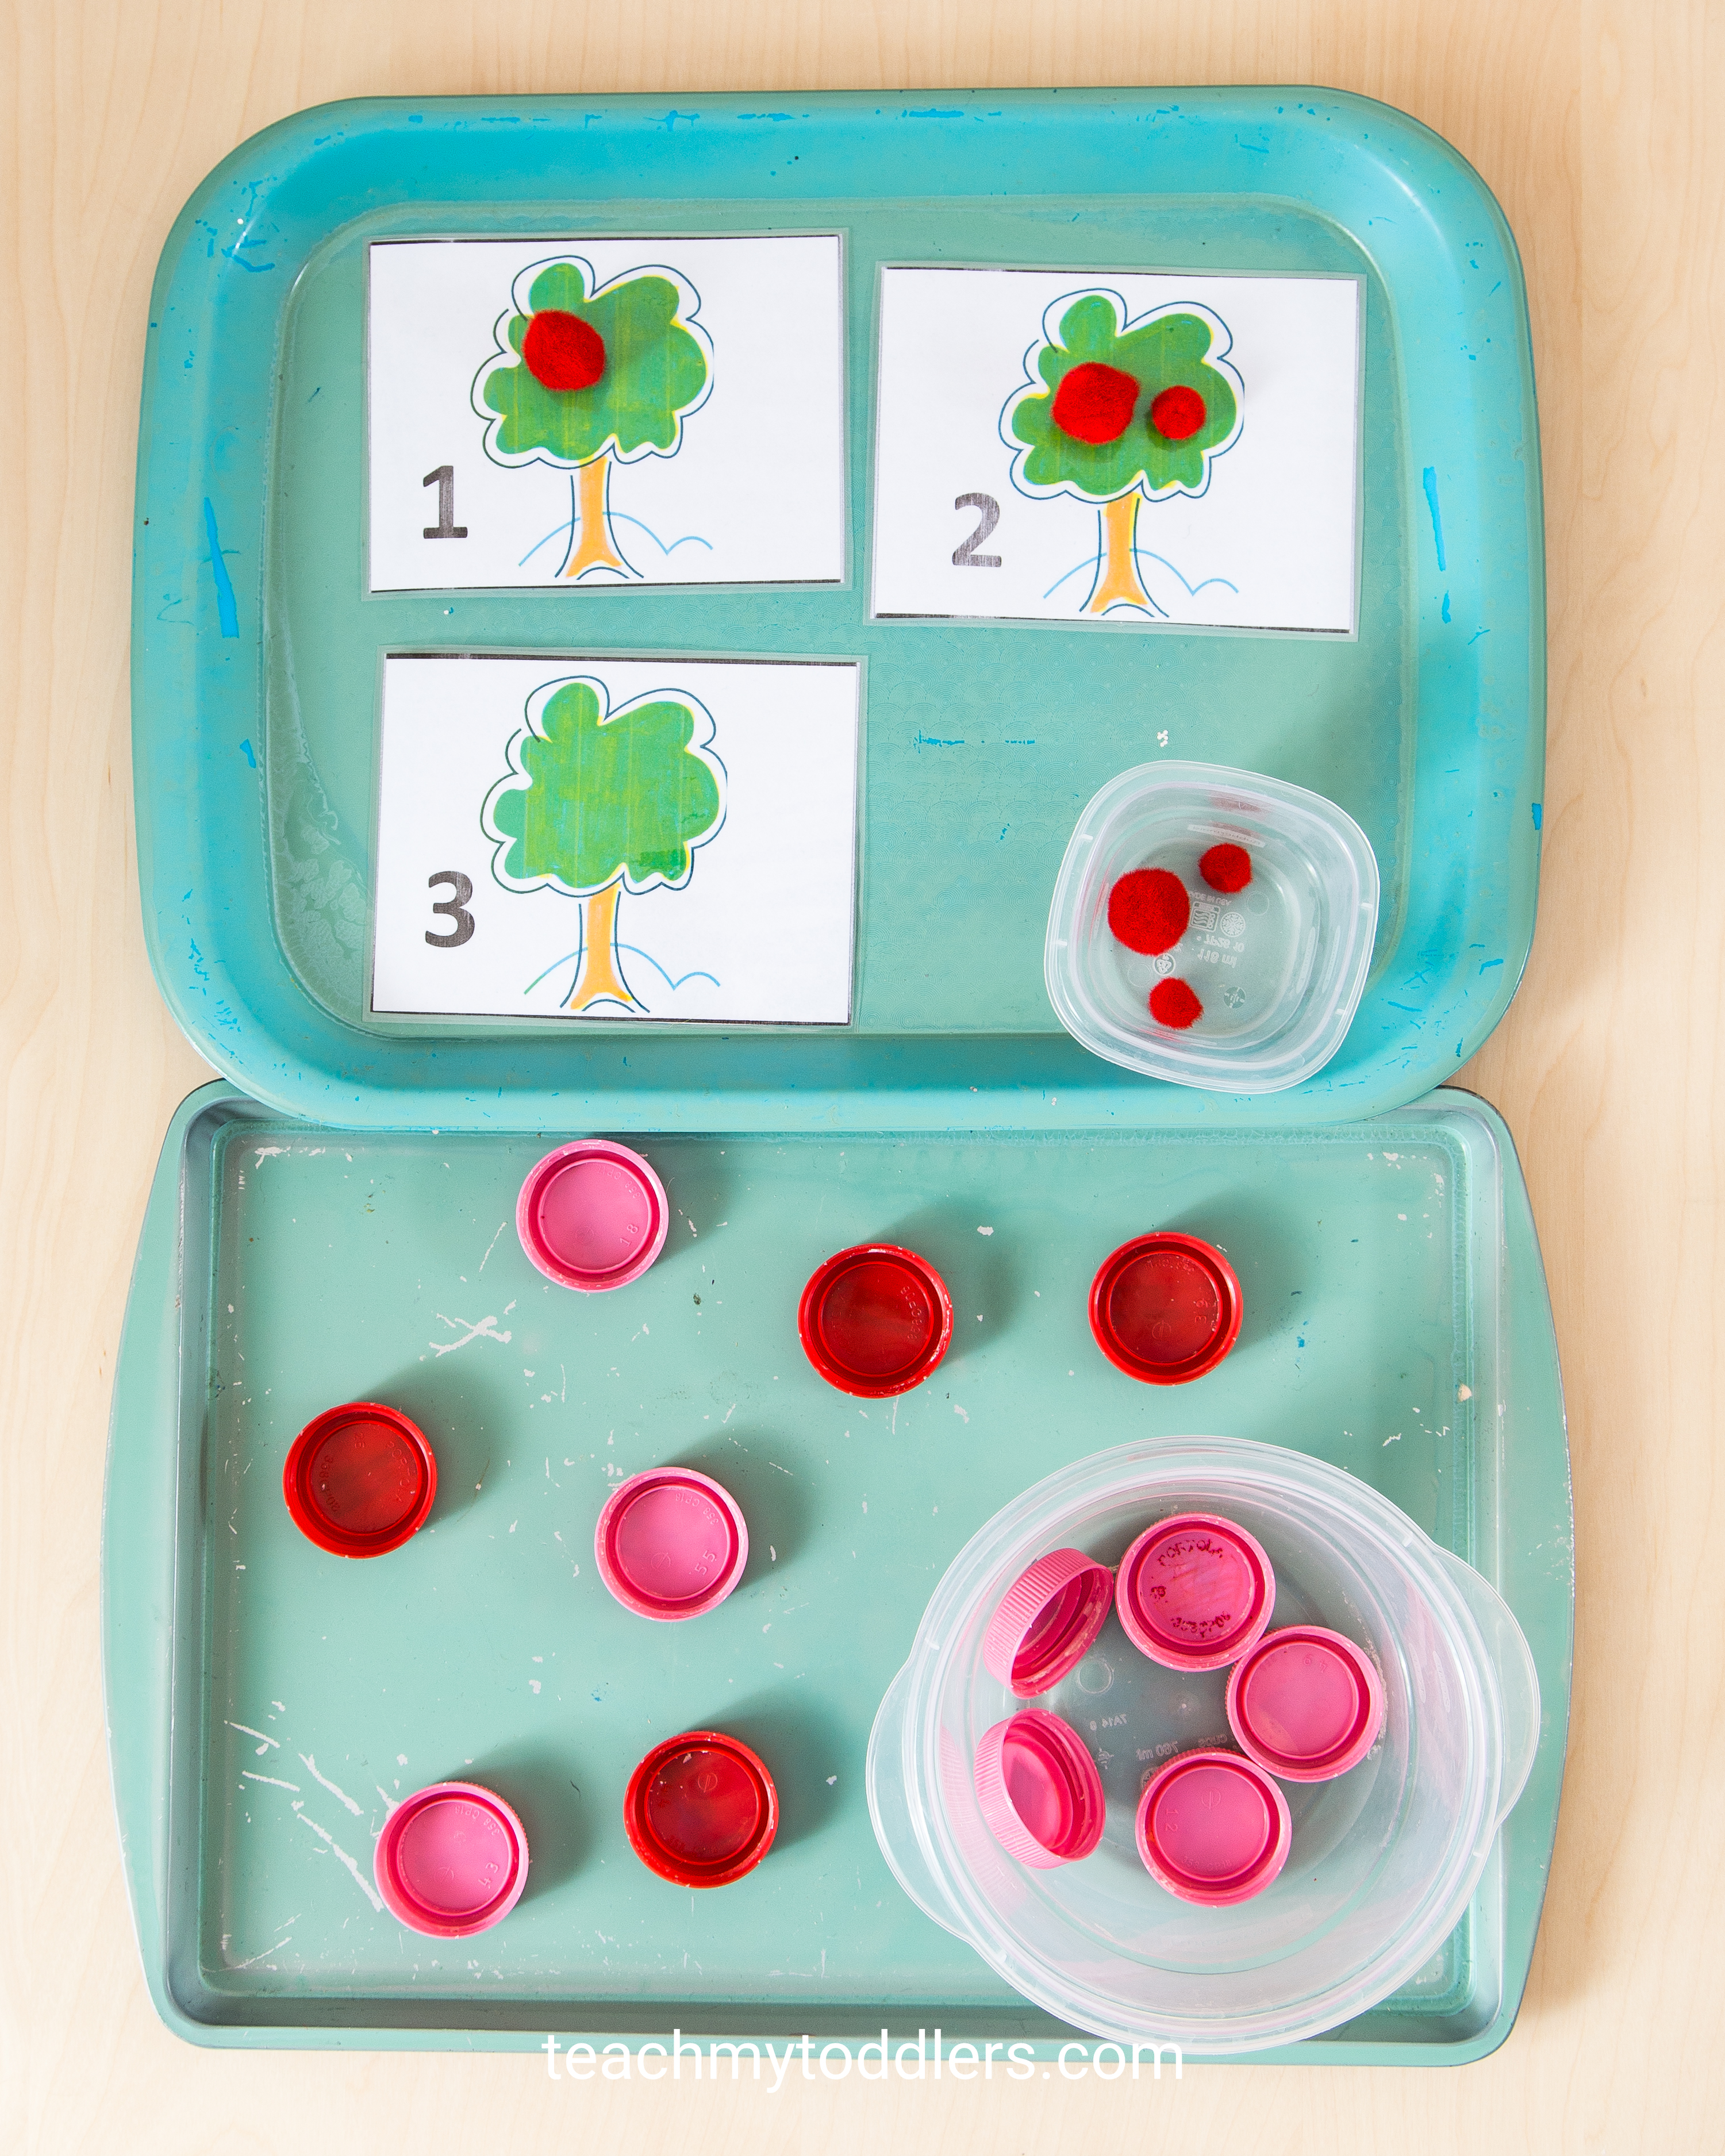 A fun activity to teach your toddler the color red